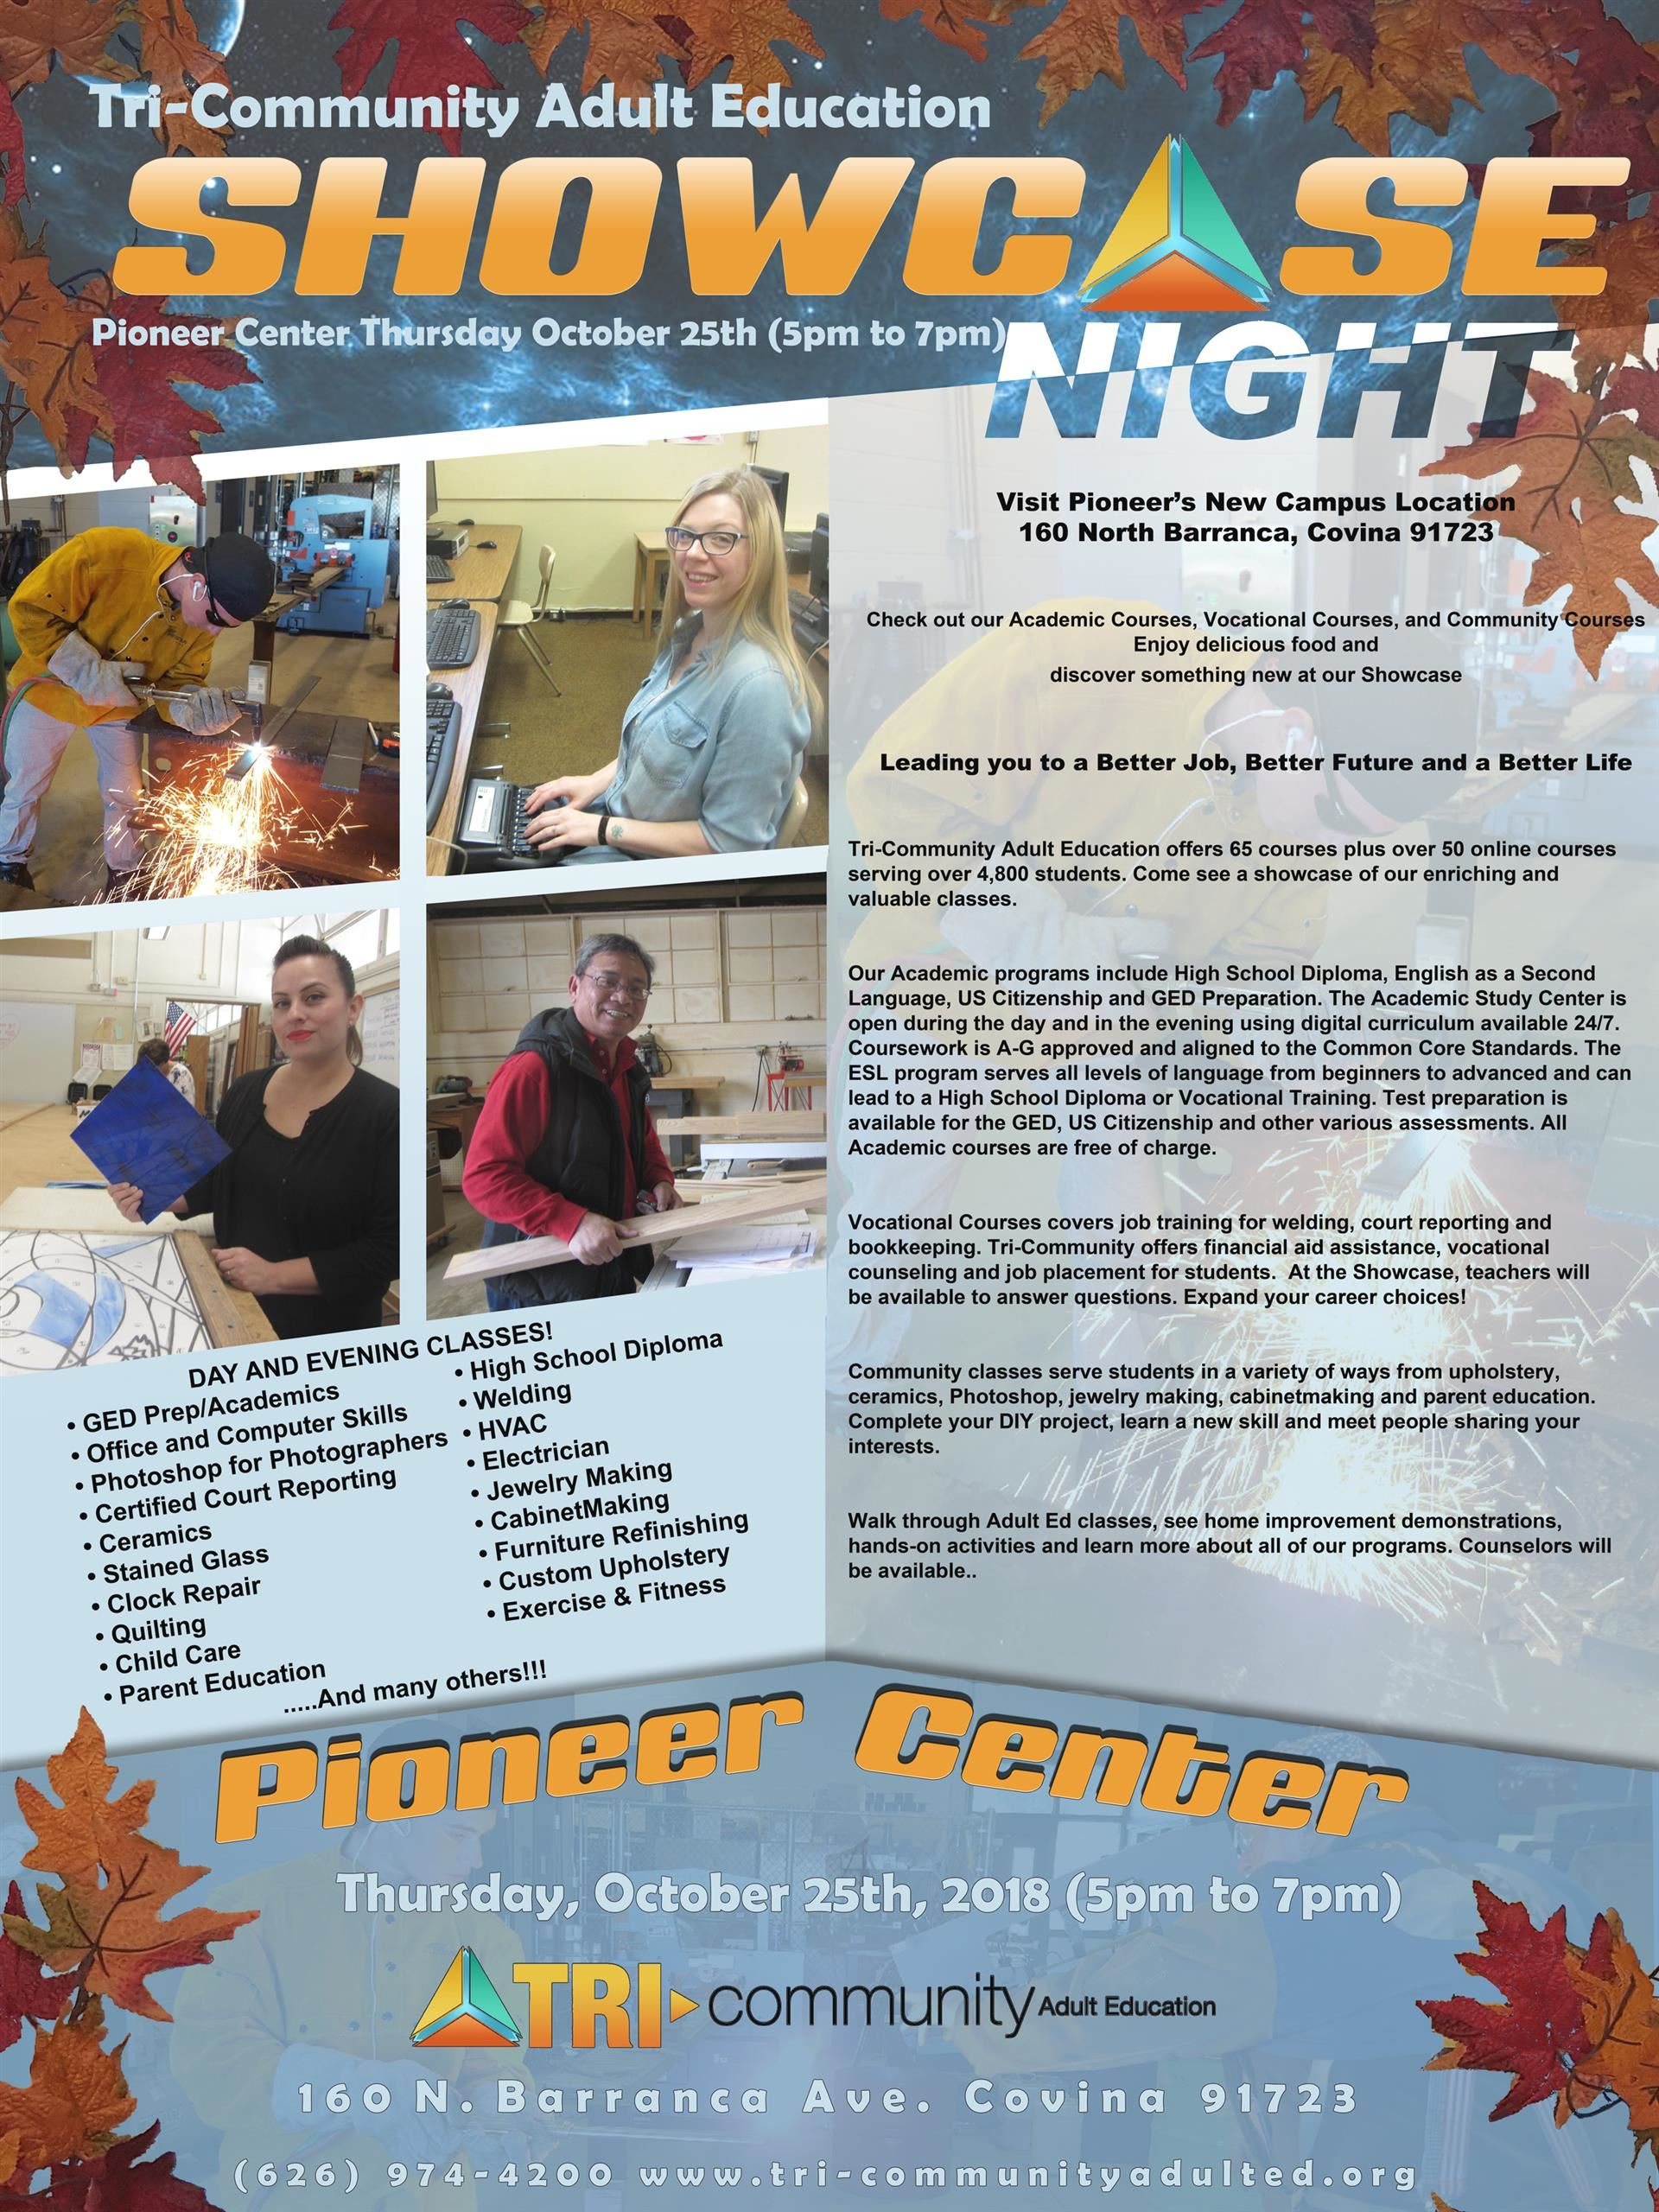 Tri-Community Adult Education Showcase Night flyer